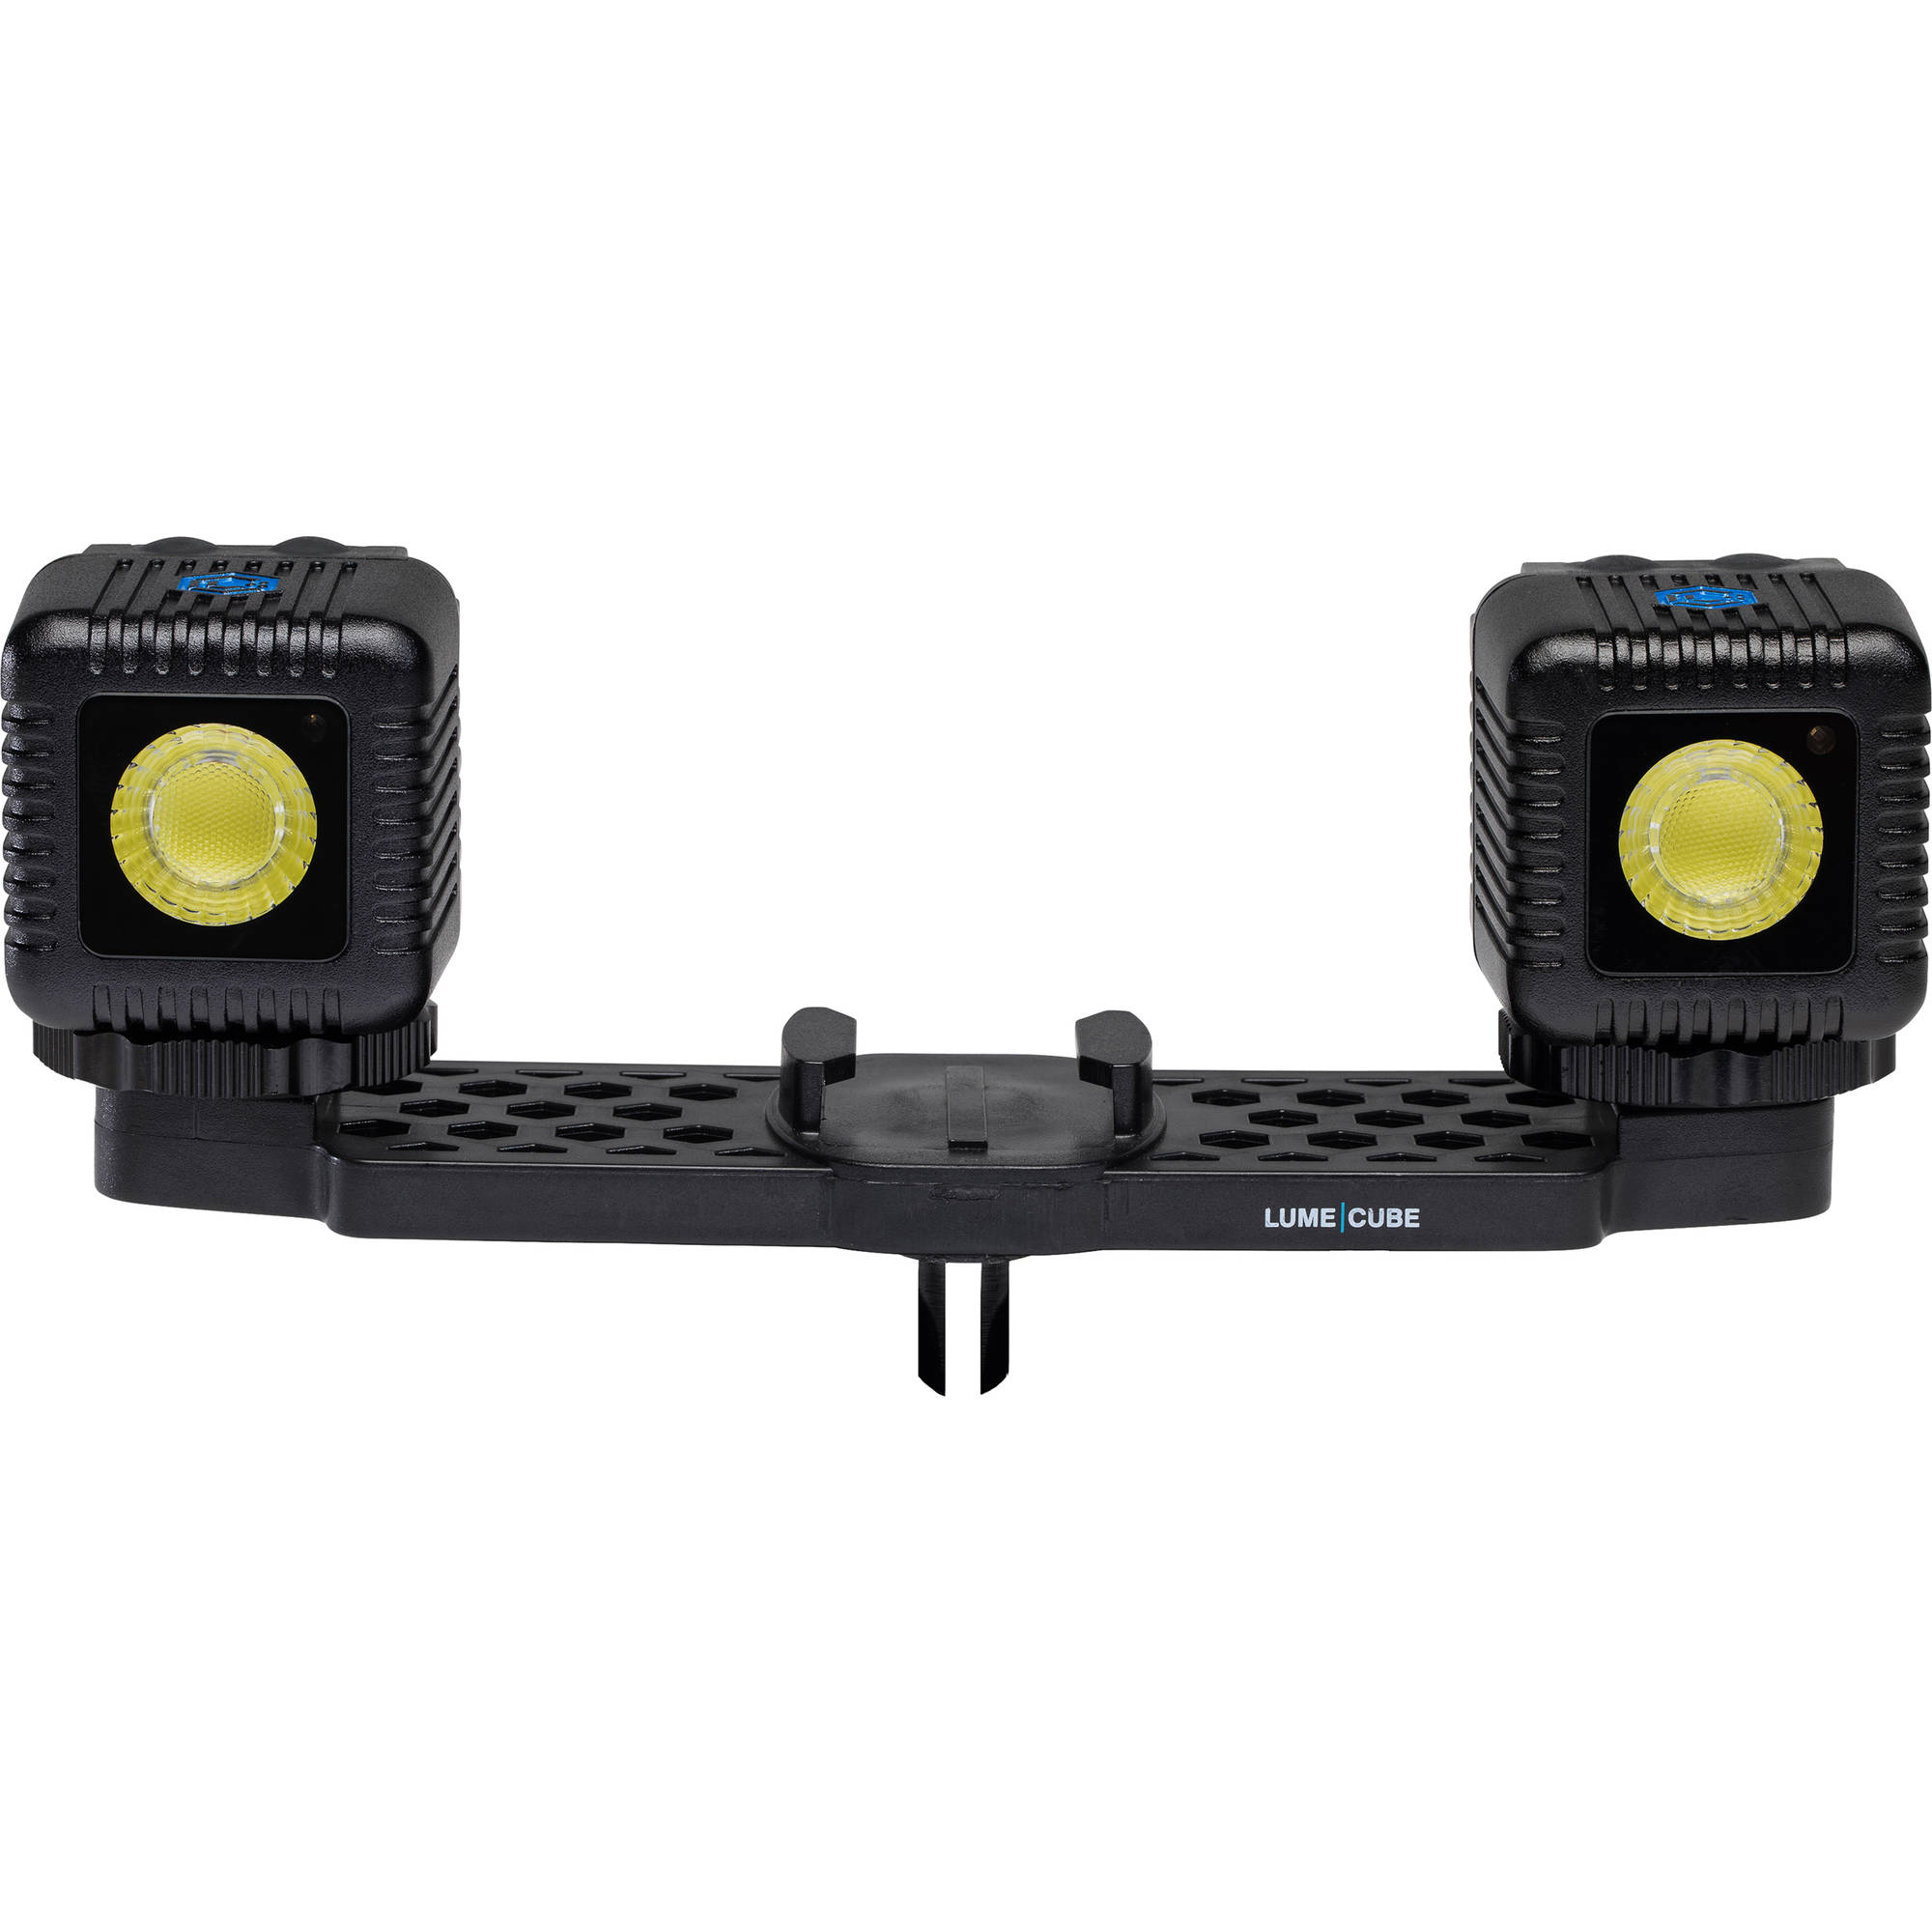 Action Cam Lights | B&H Photo Video